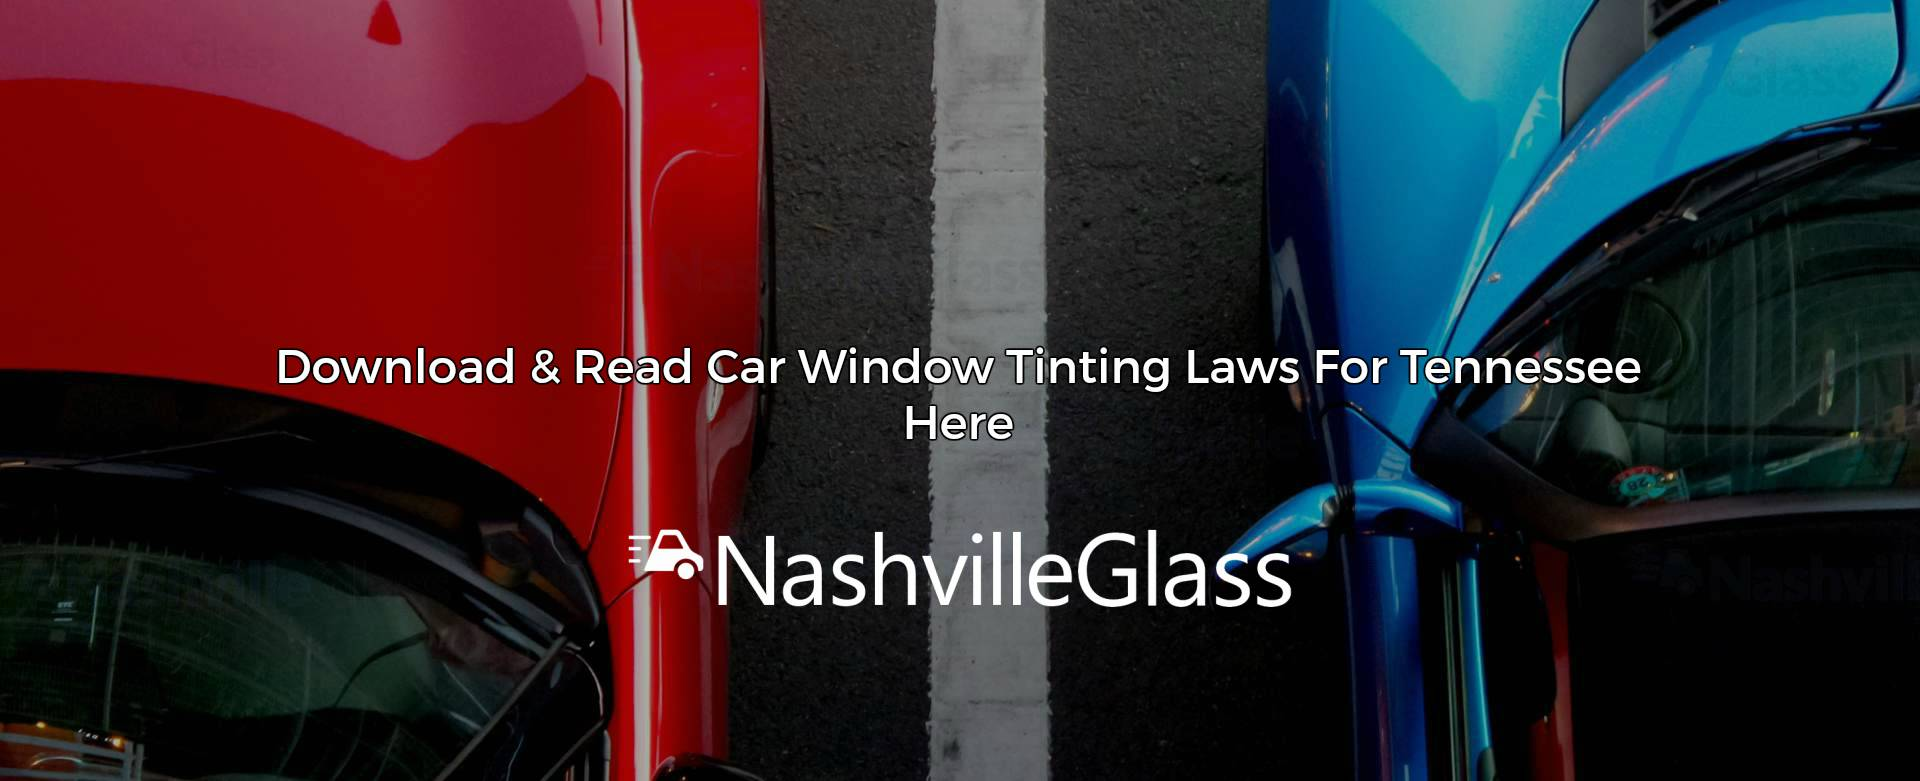 Car Window Tinting Nashville TN